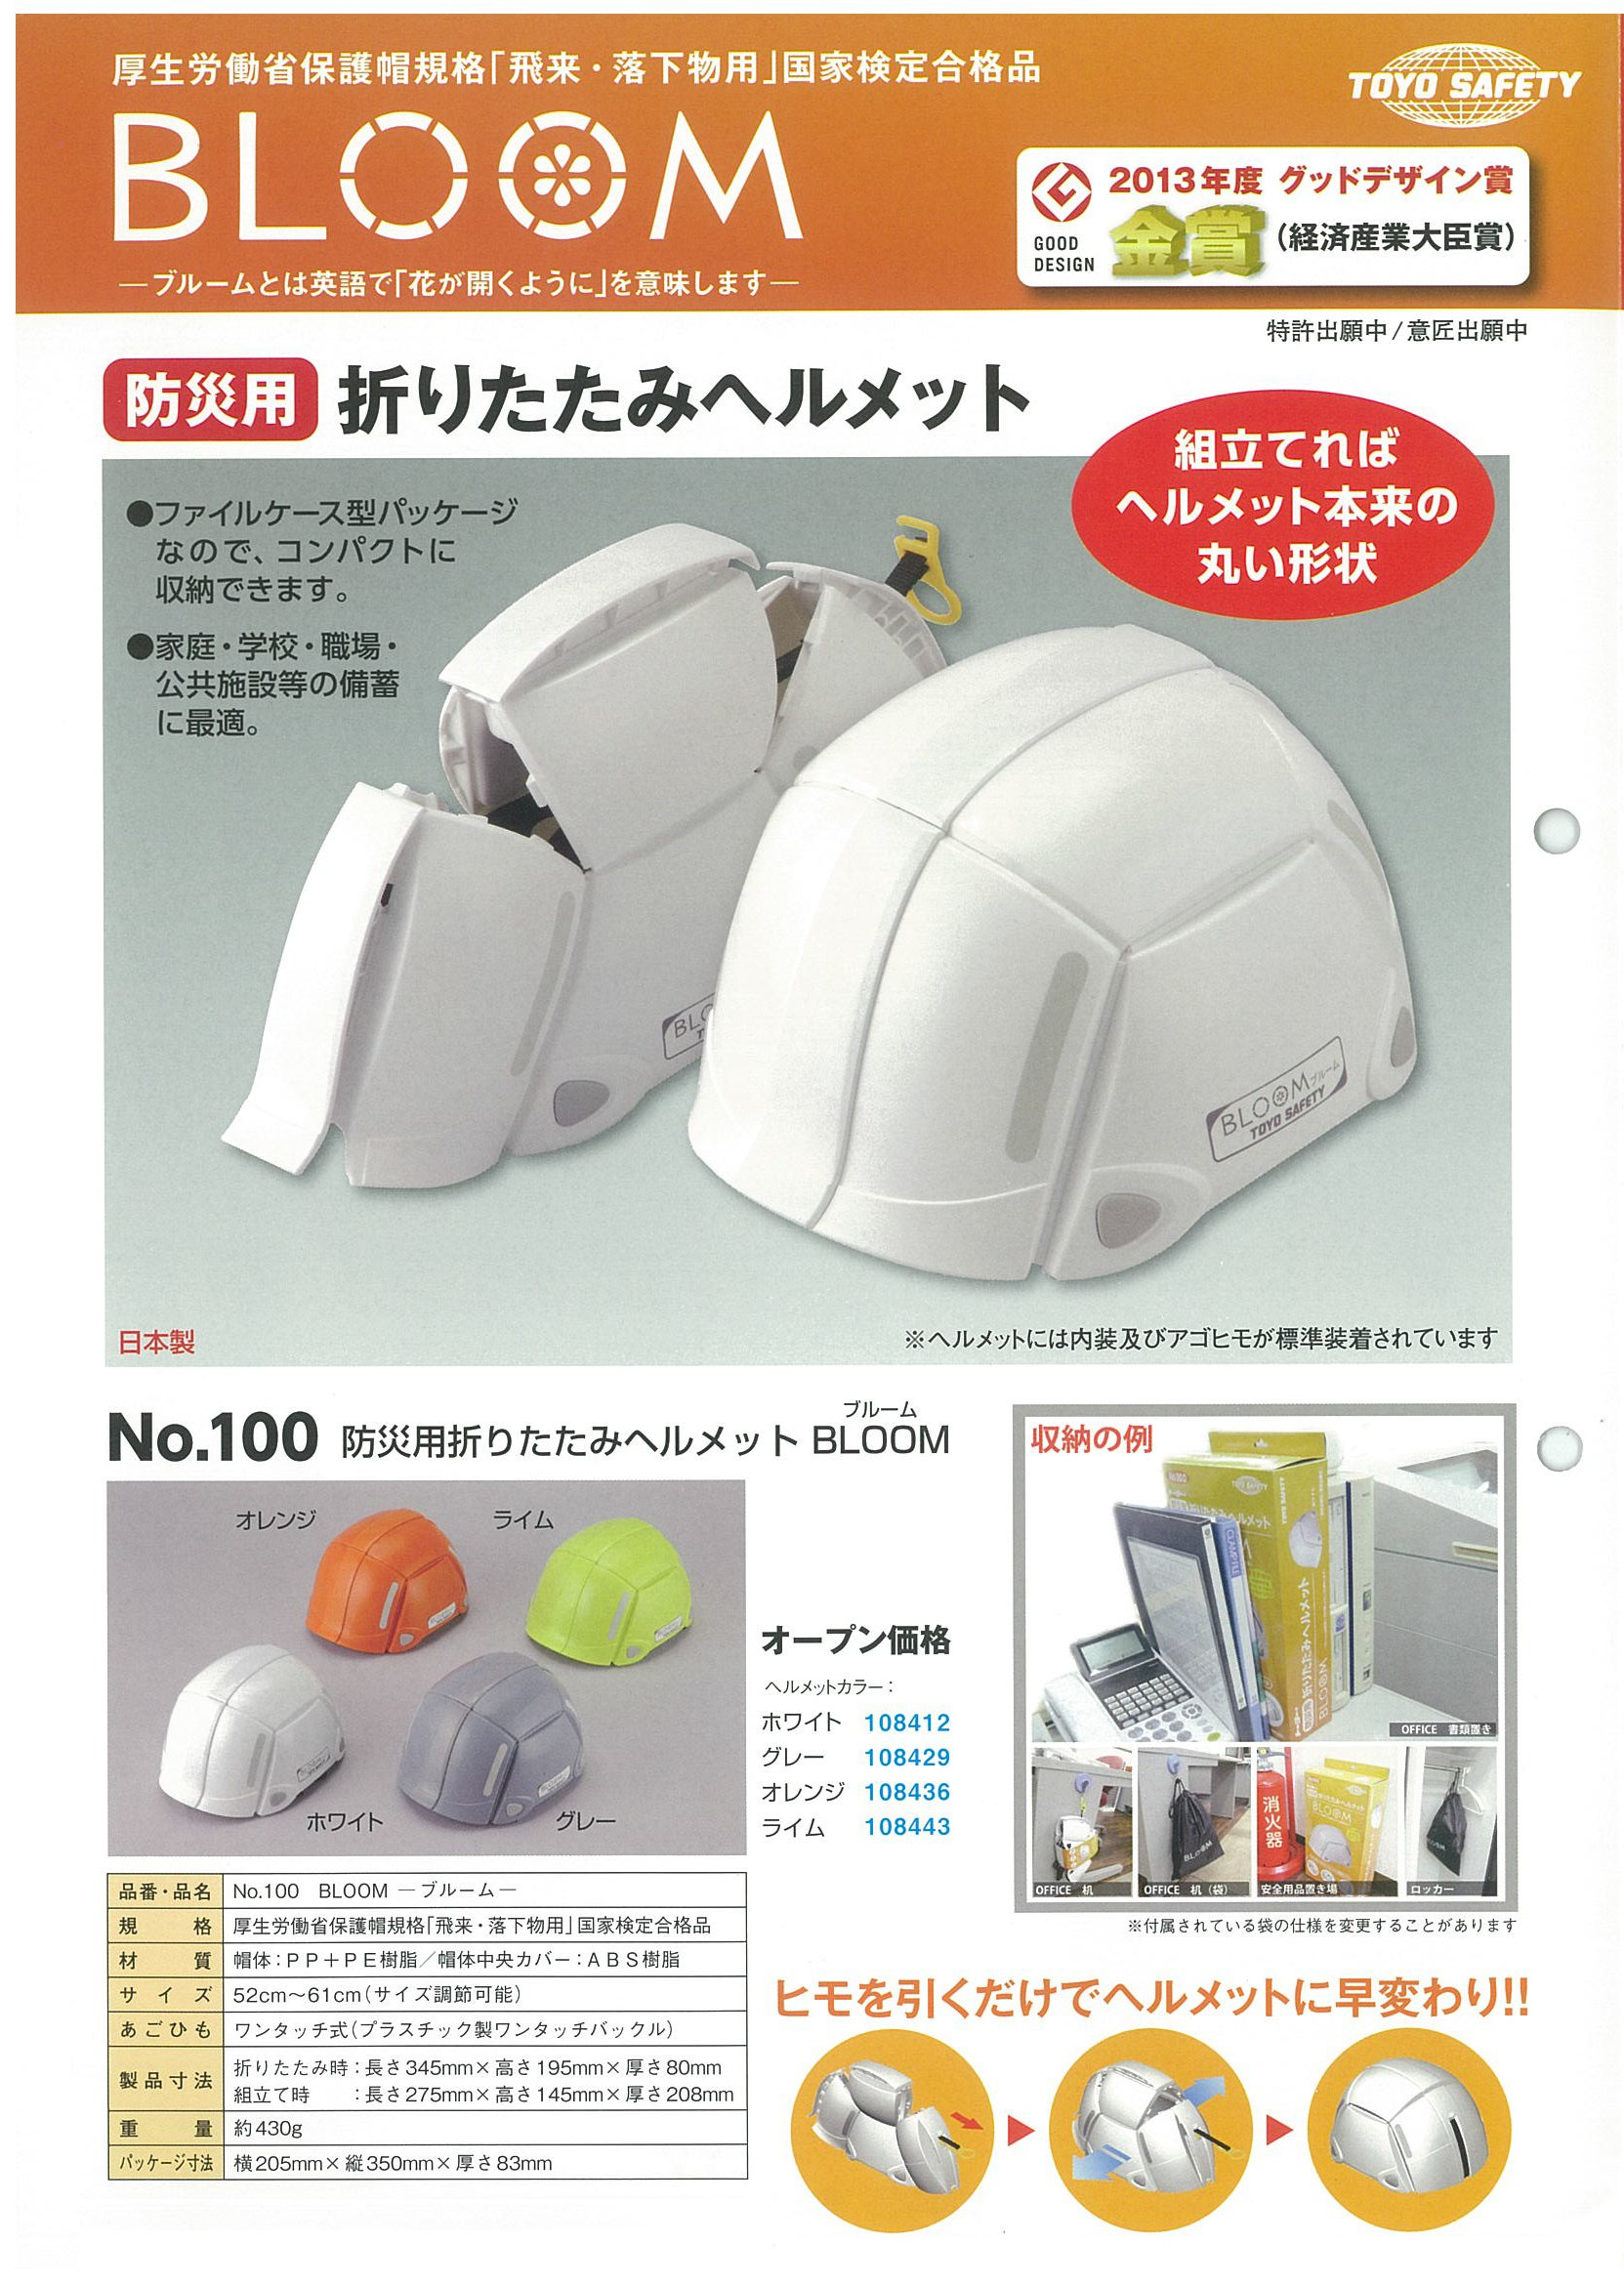 Folding Helmet Bloom No.100. Color Gray